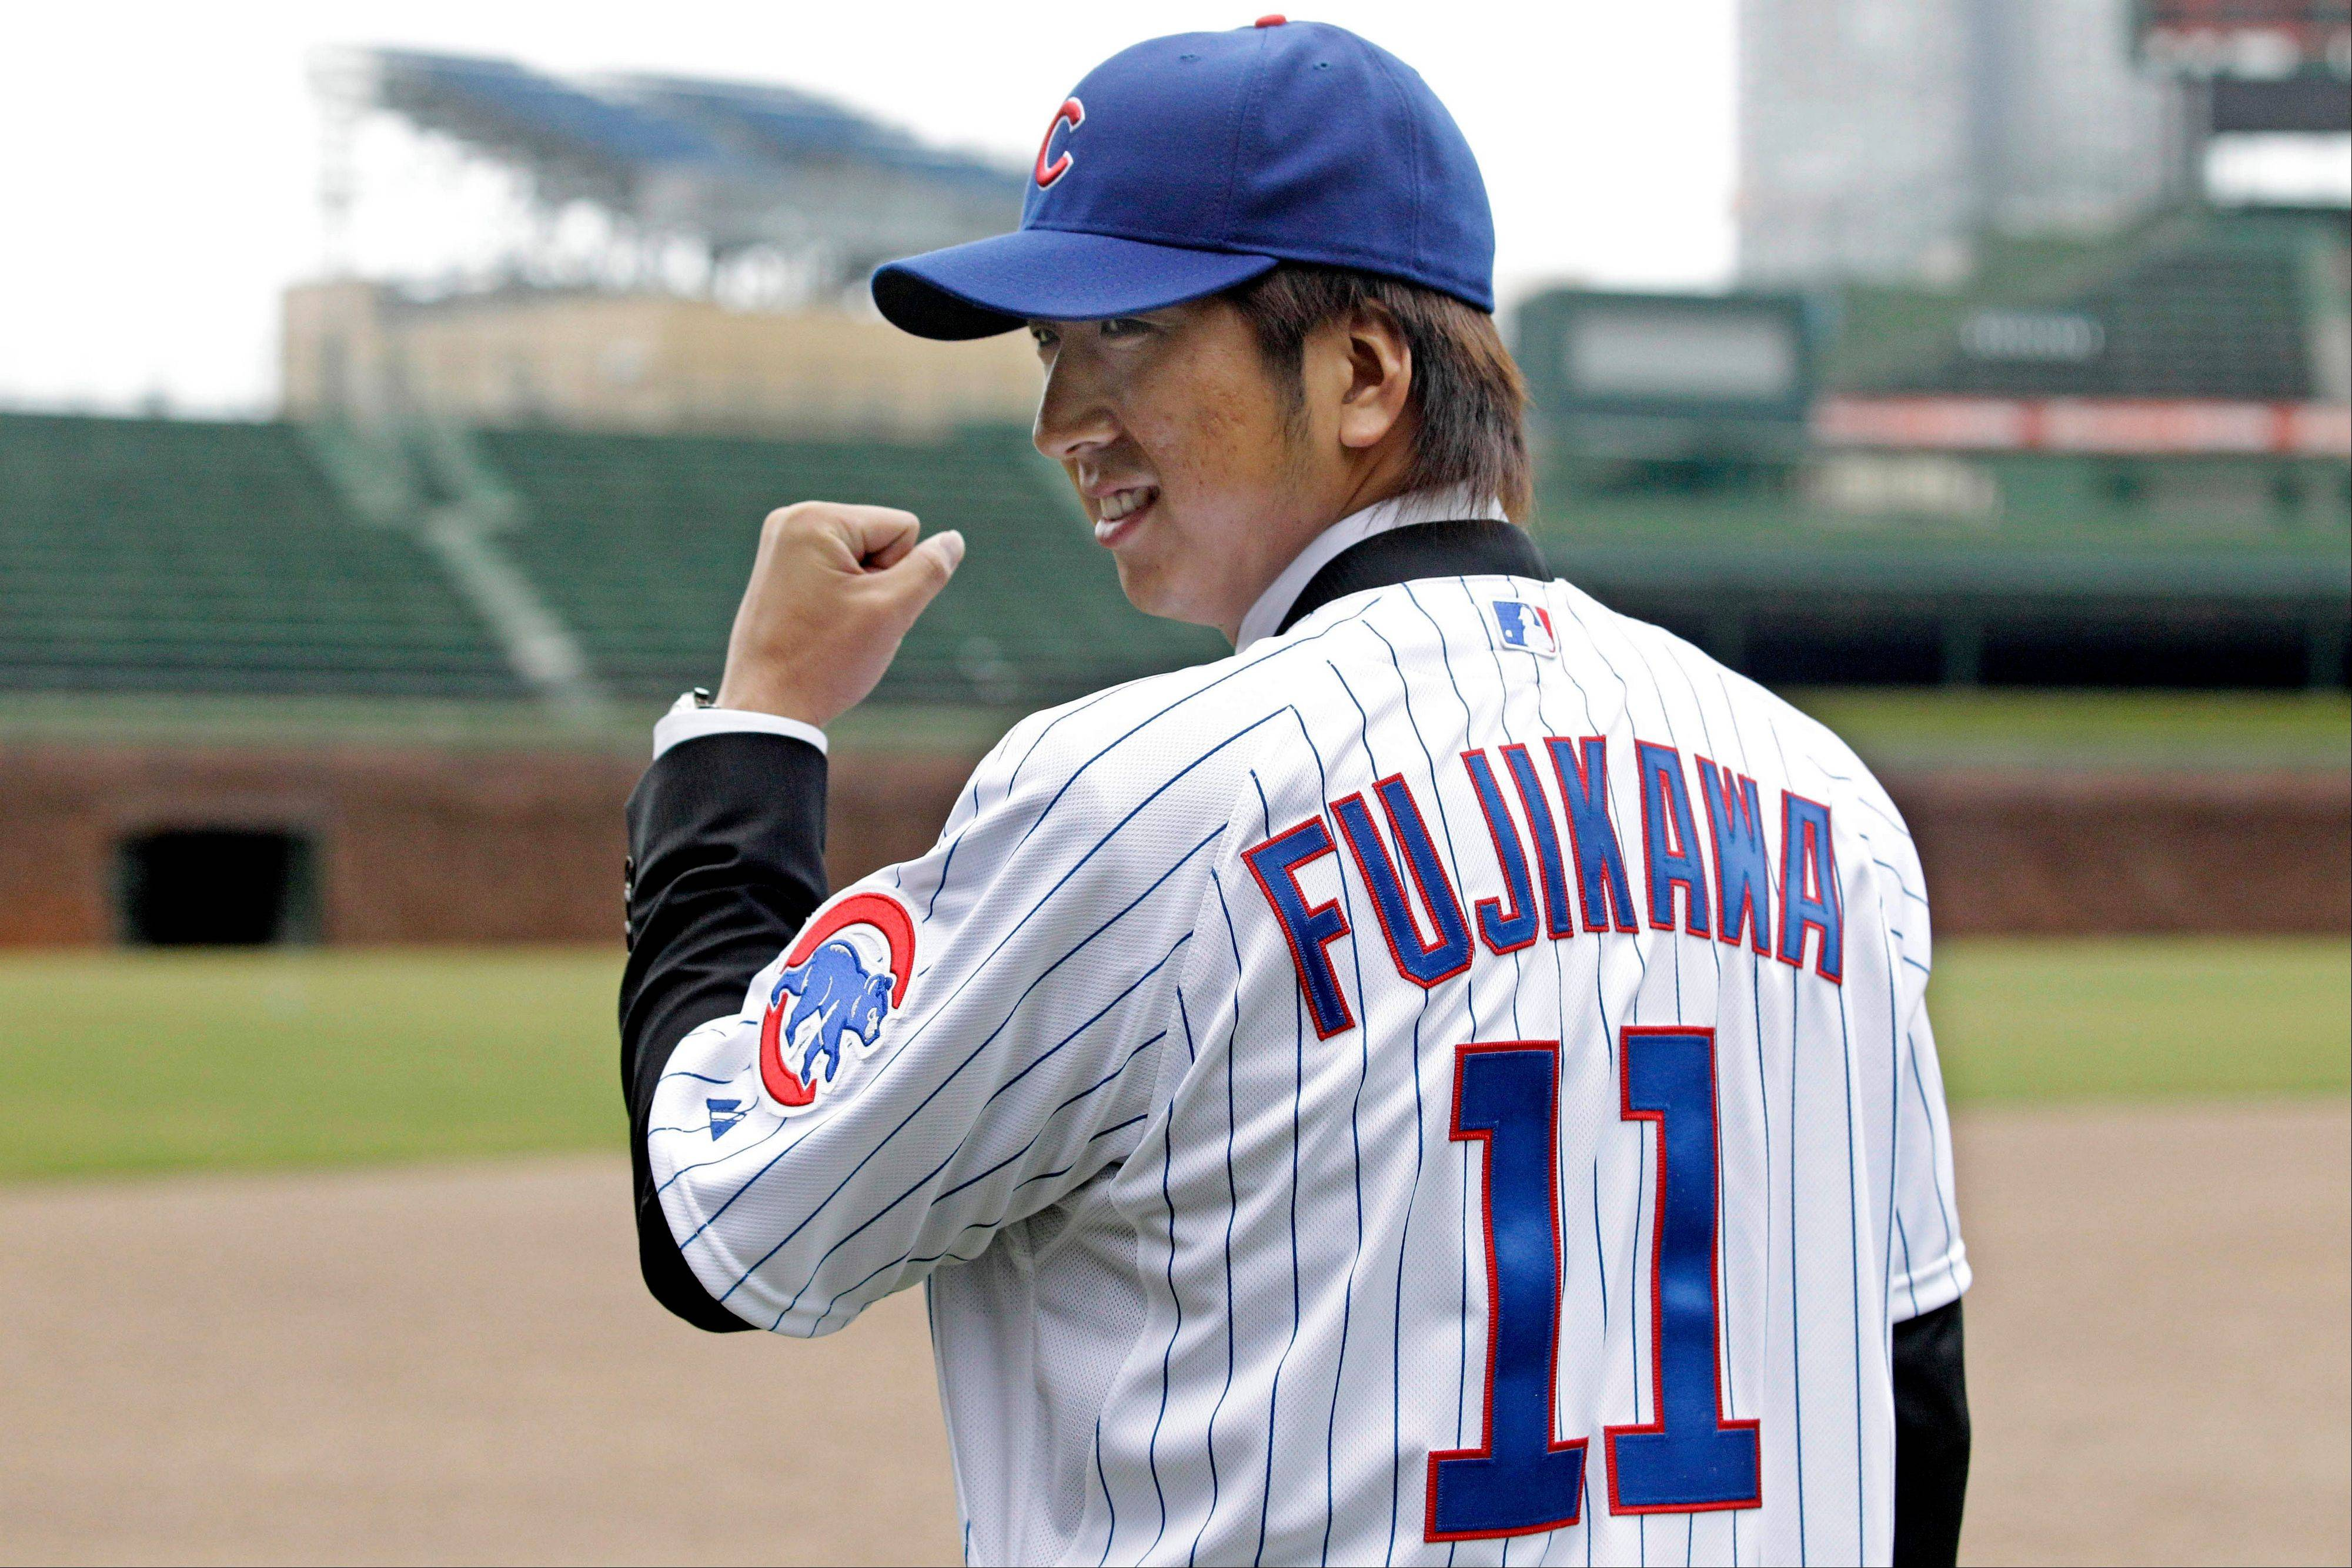 Kyuji Fujikawa, who was a closer in Japanese baseball for the Hanshin Tigers, poses for pictures at Wrigley Field after being introduced to the media Friday.